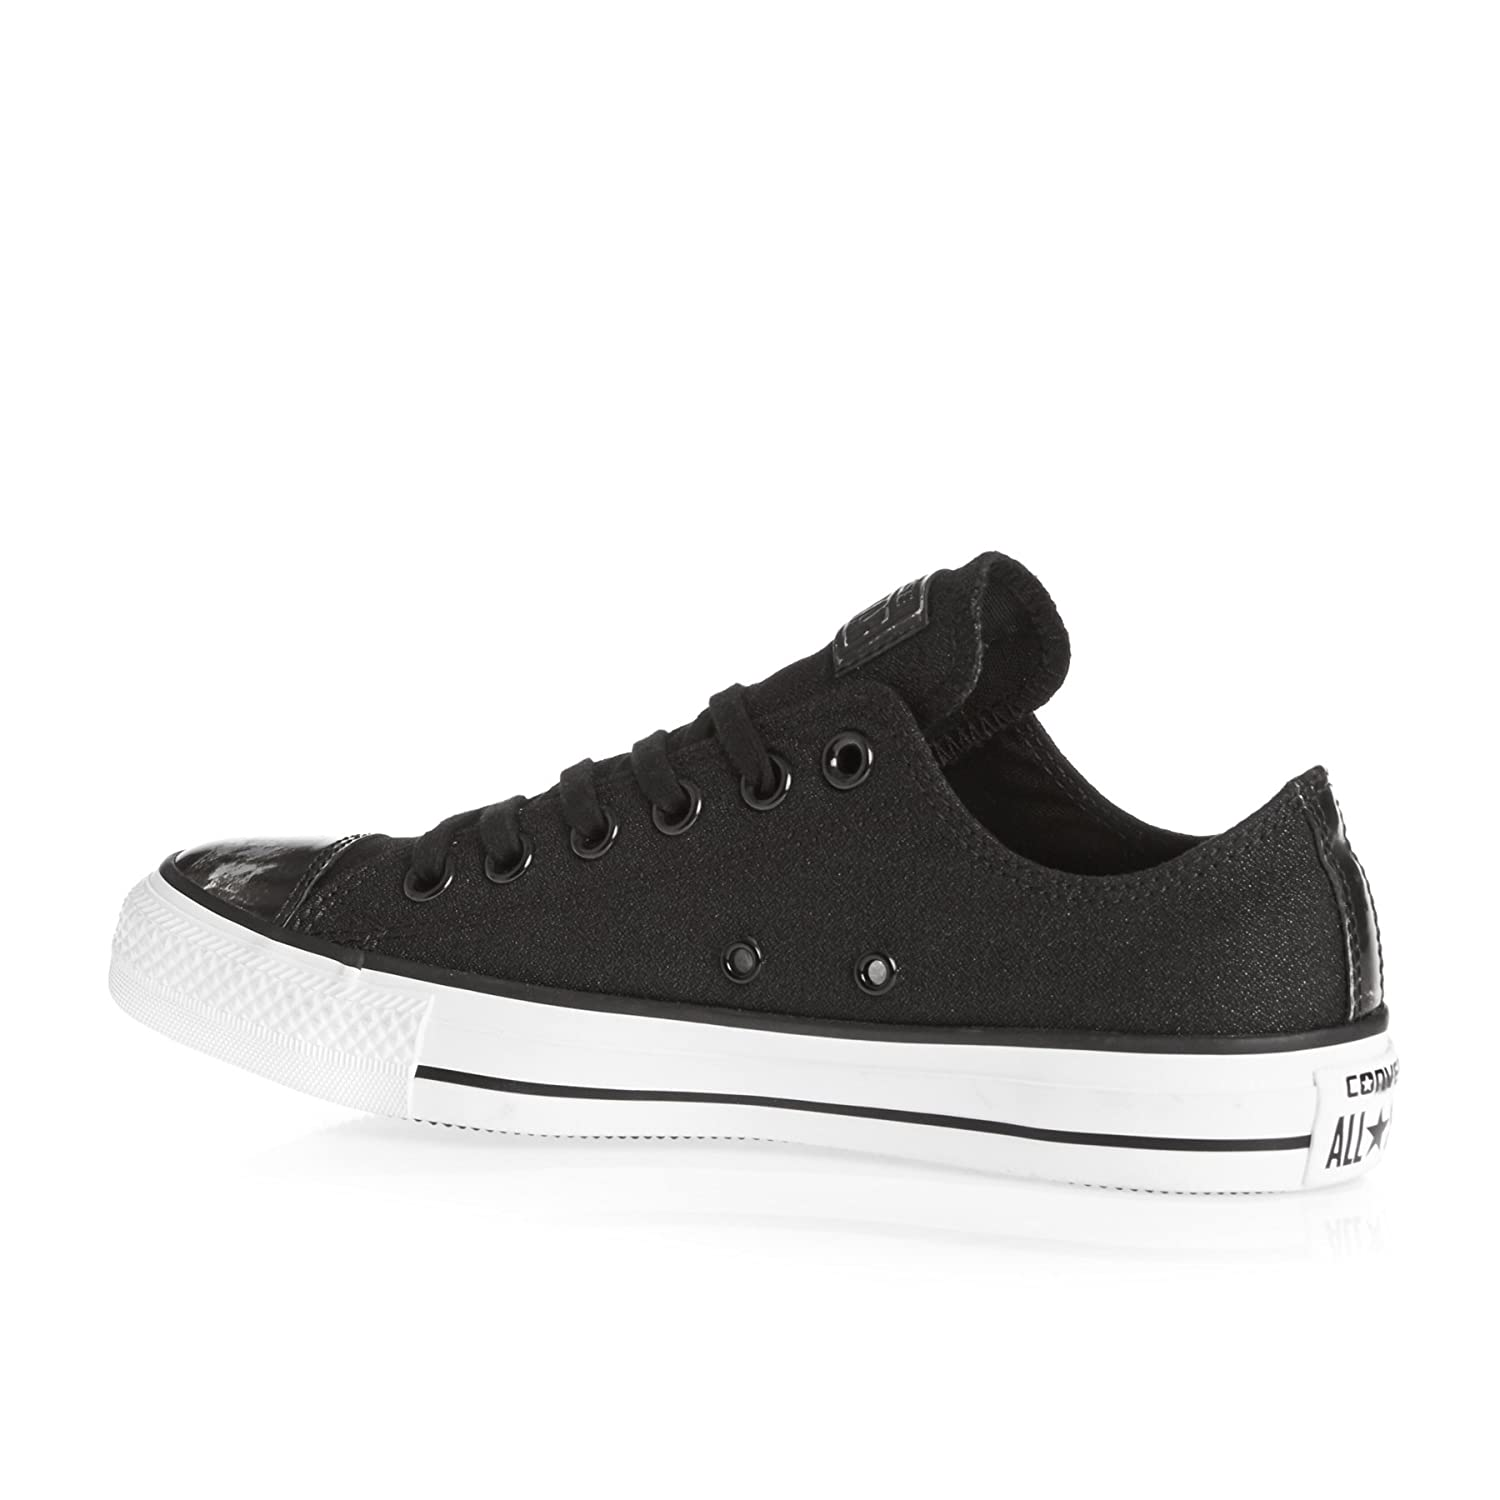 Comfortable Converse Ct All Star Ox Womens Black/Navy/White Online Shopping